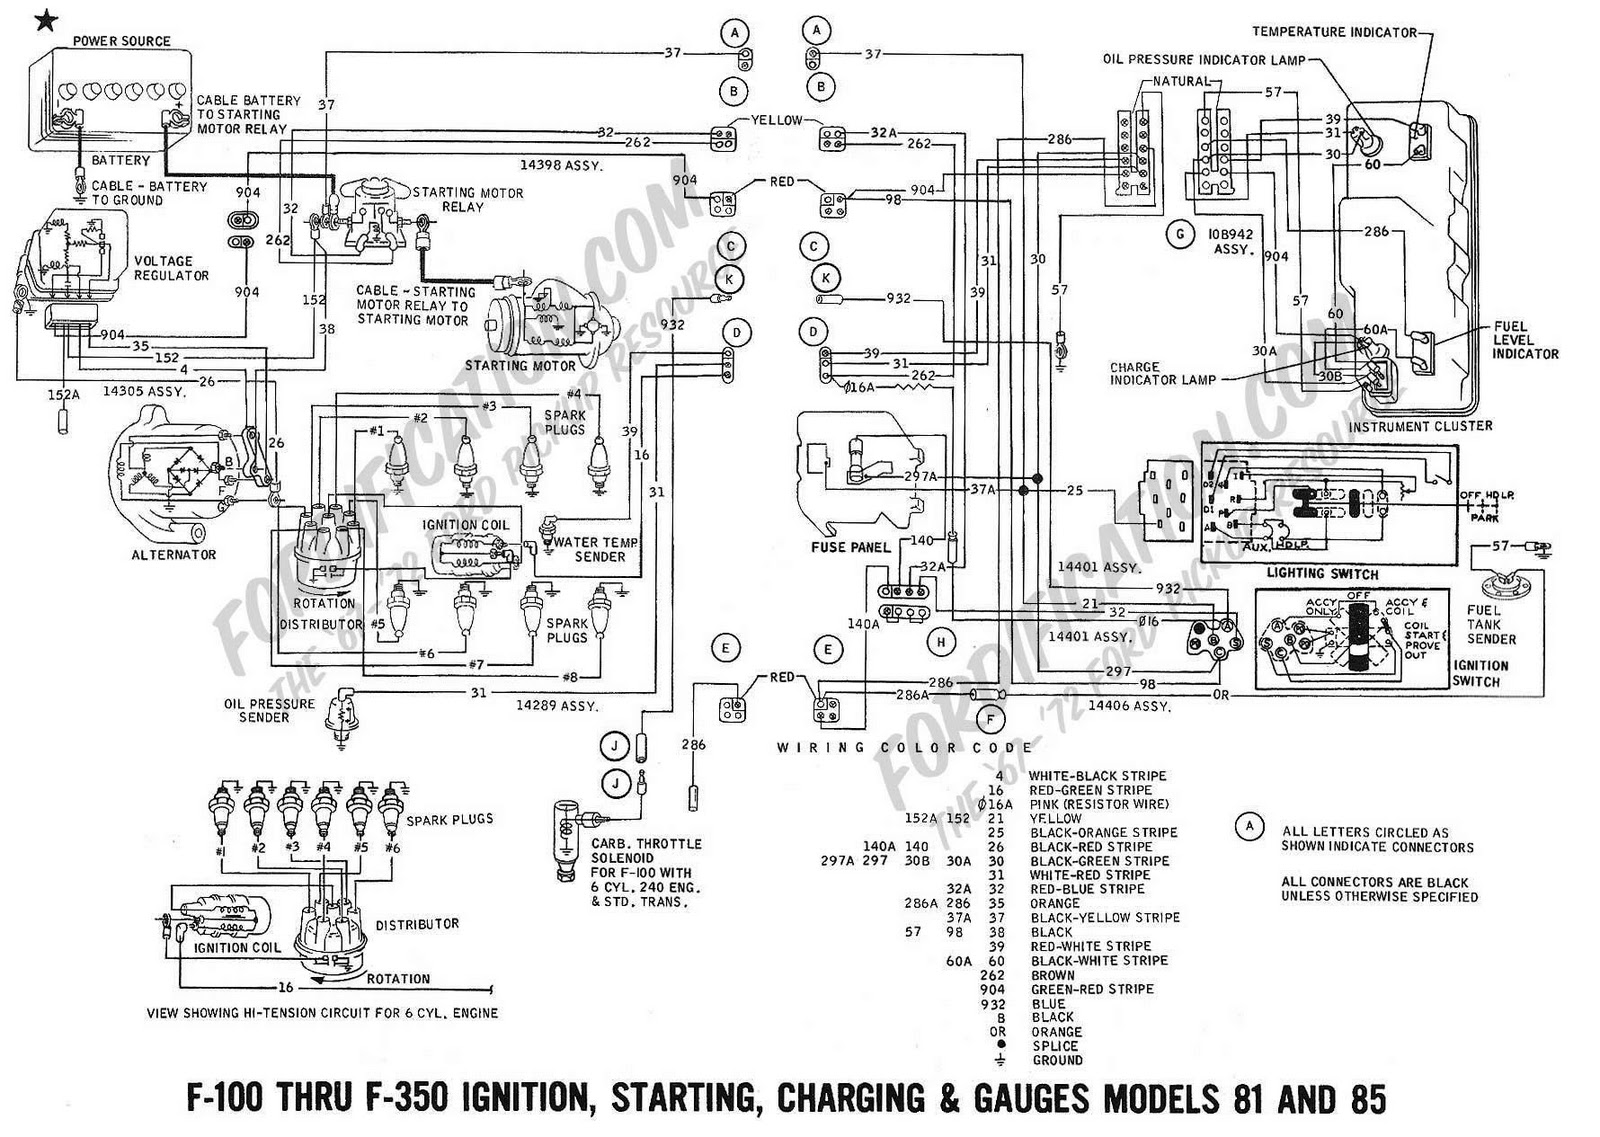 1968 f100 wiring harness